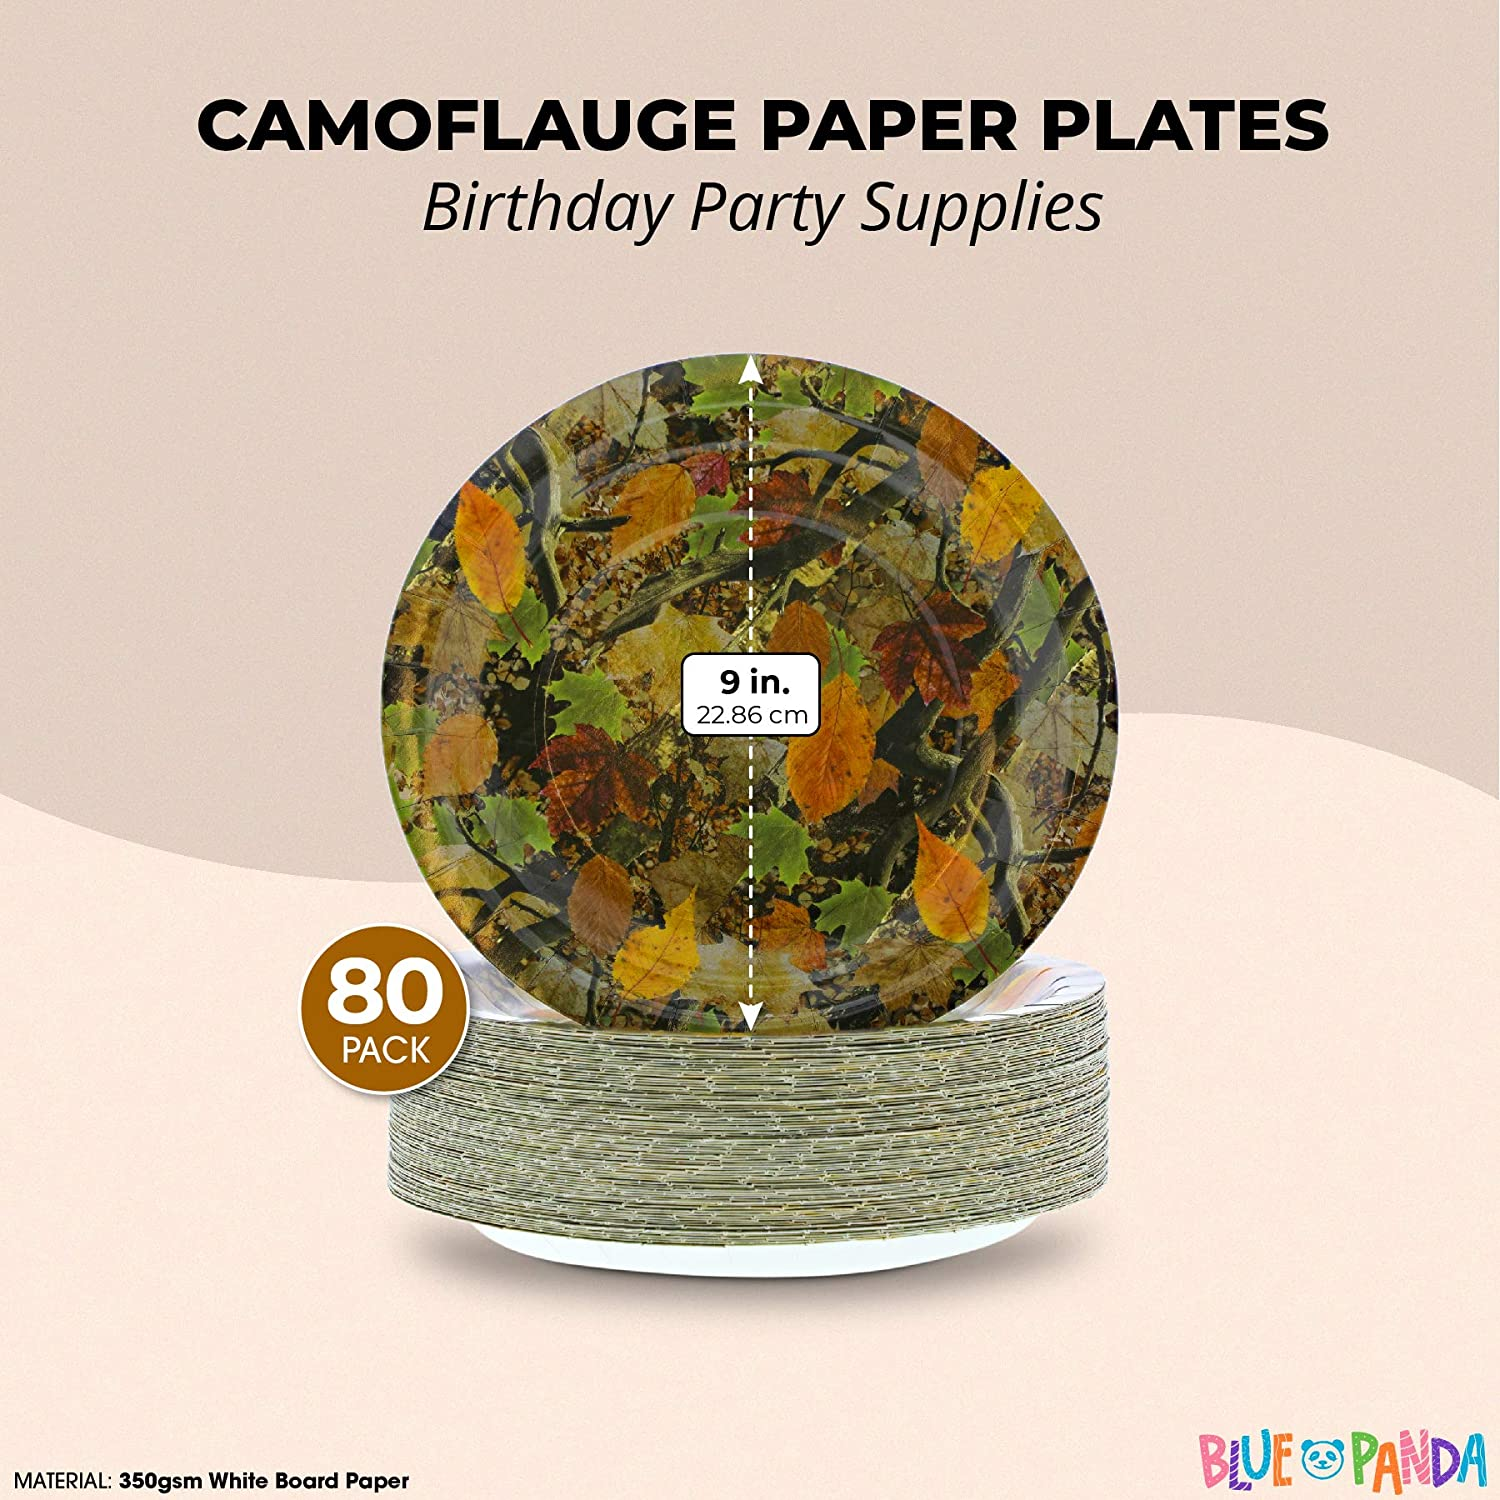 9 In, 80 Pack Camouflaged Paper Plates for Birthday Party